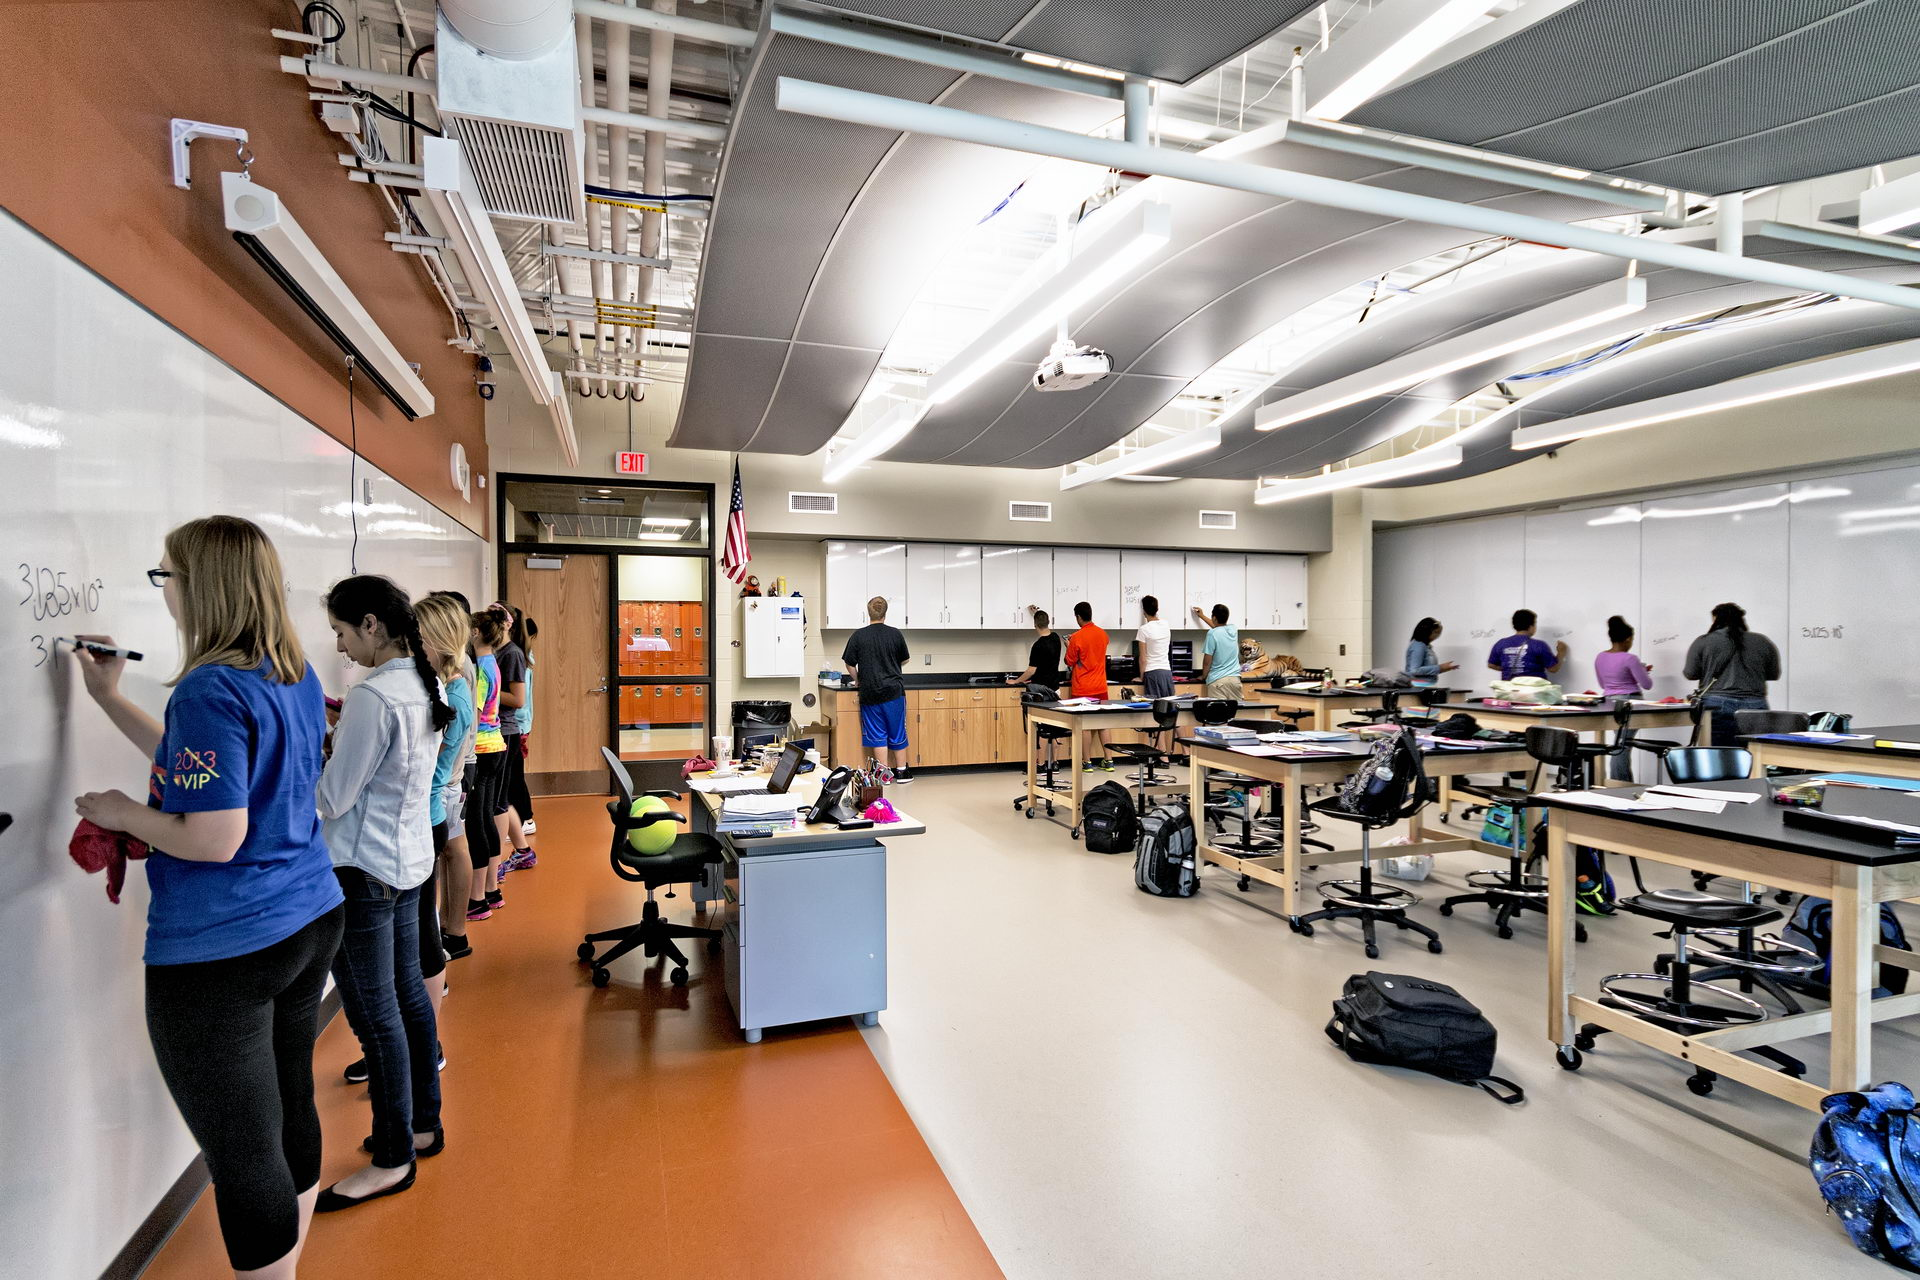 Science Classroom Breaks Boundary Between Lecture & Lab